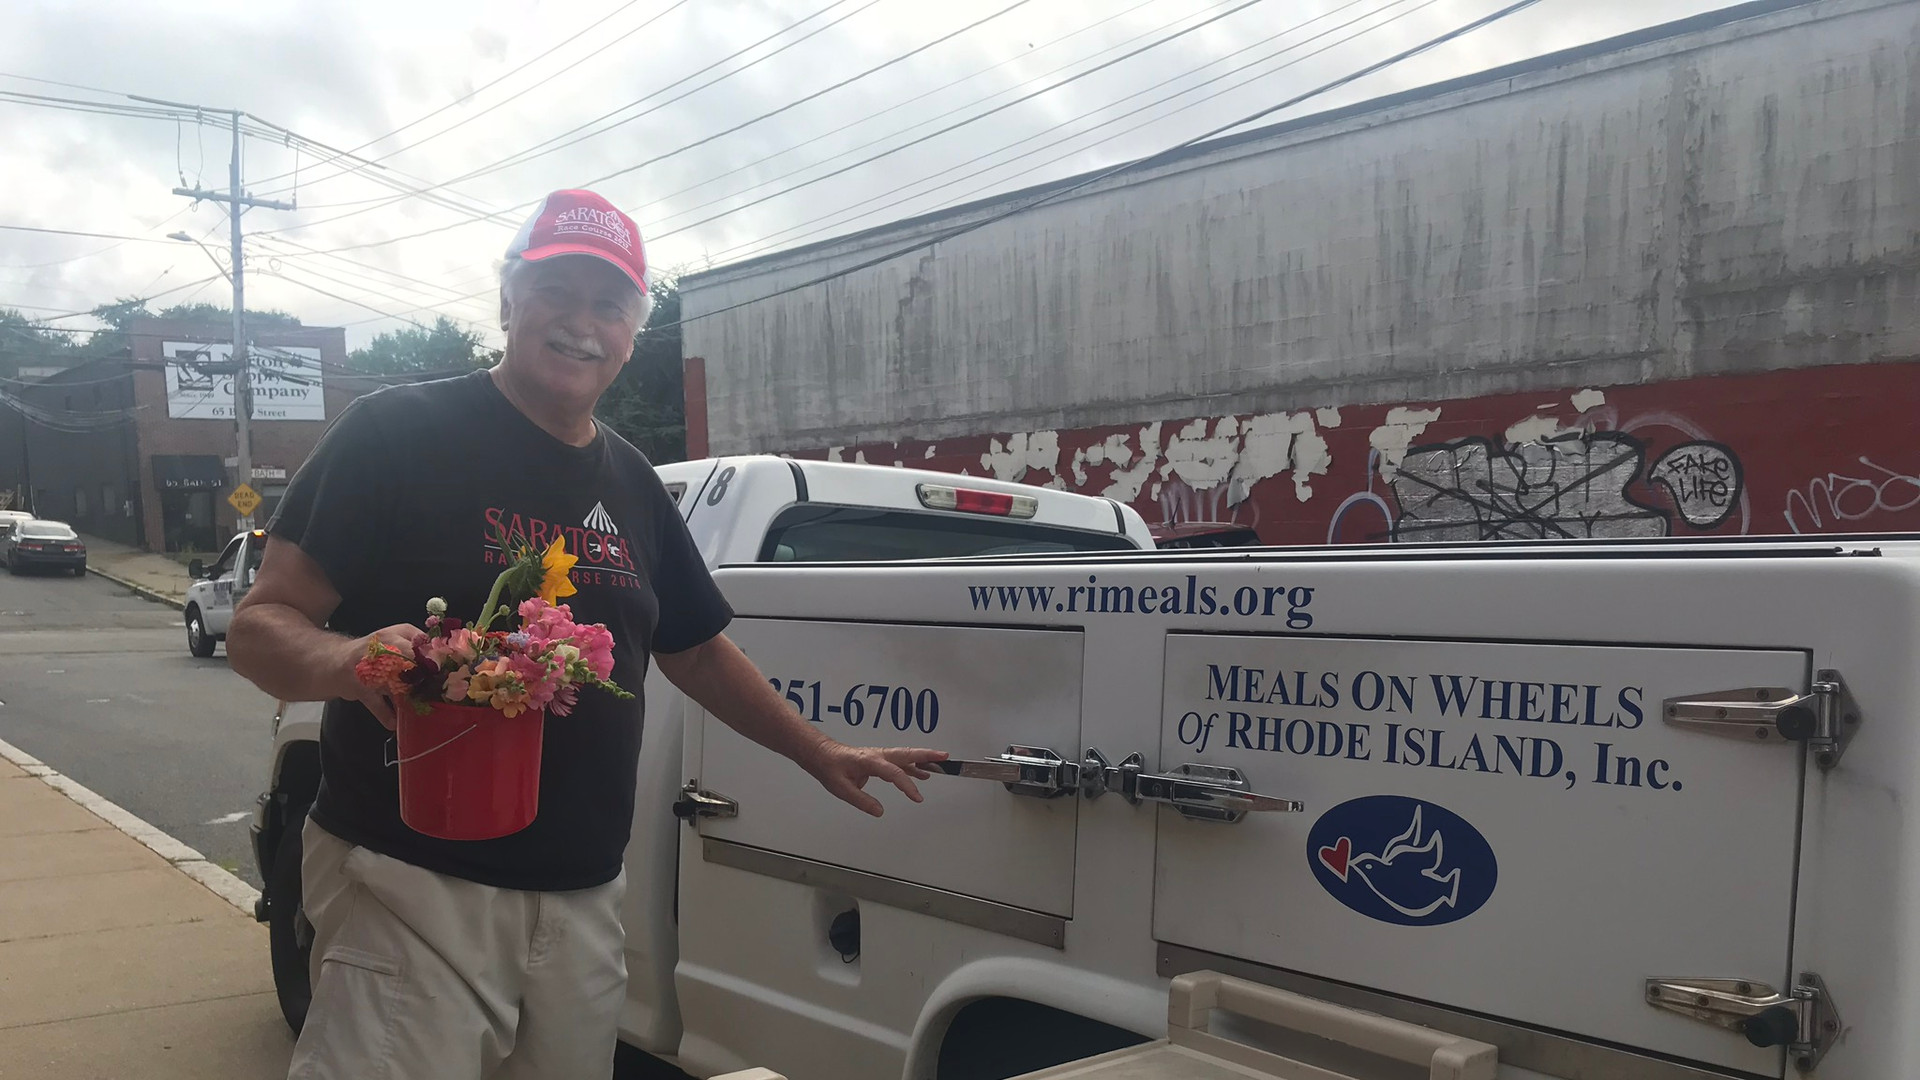 Meals on Wheels drivers love delivering fresh flowers